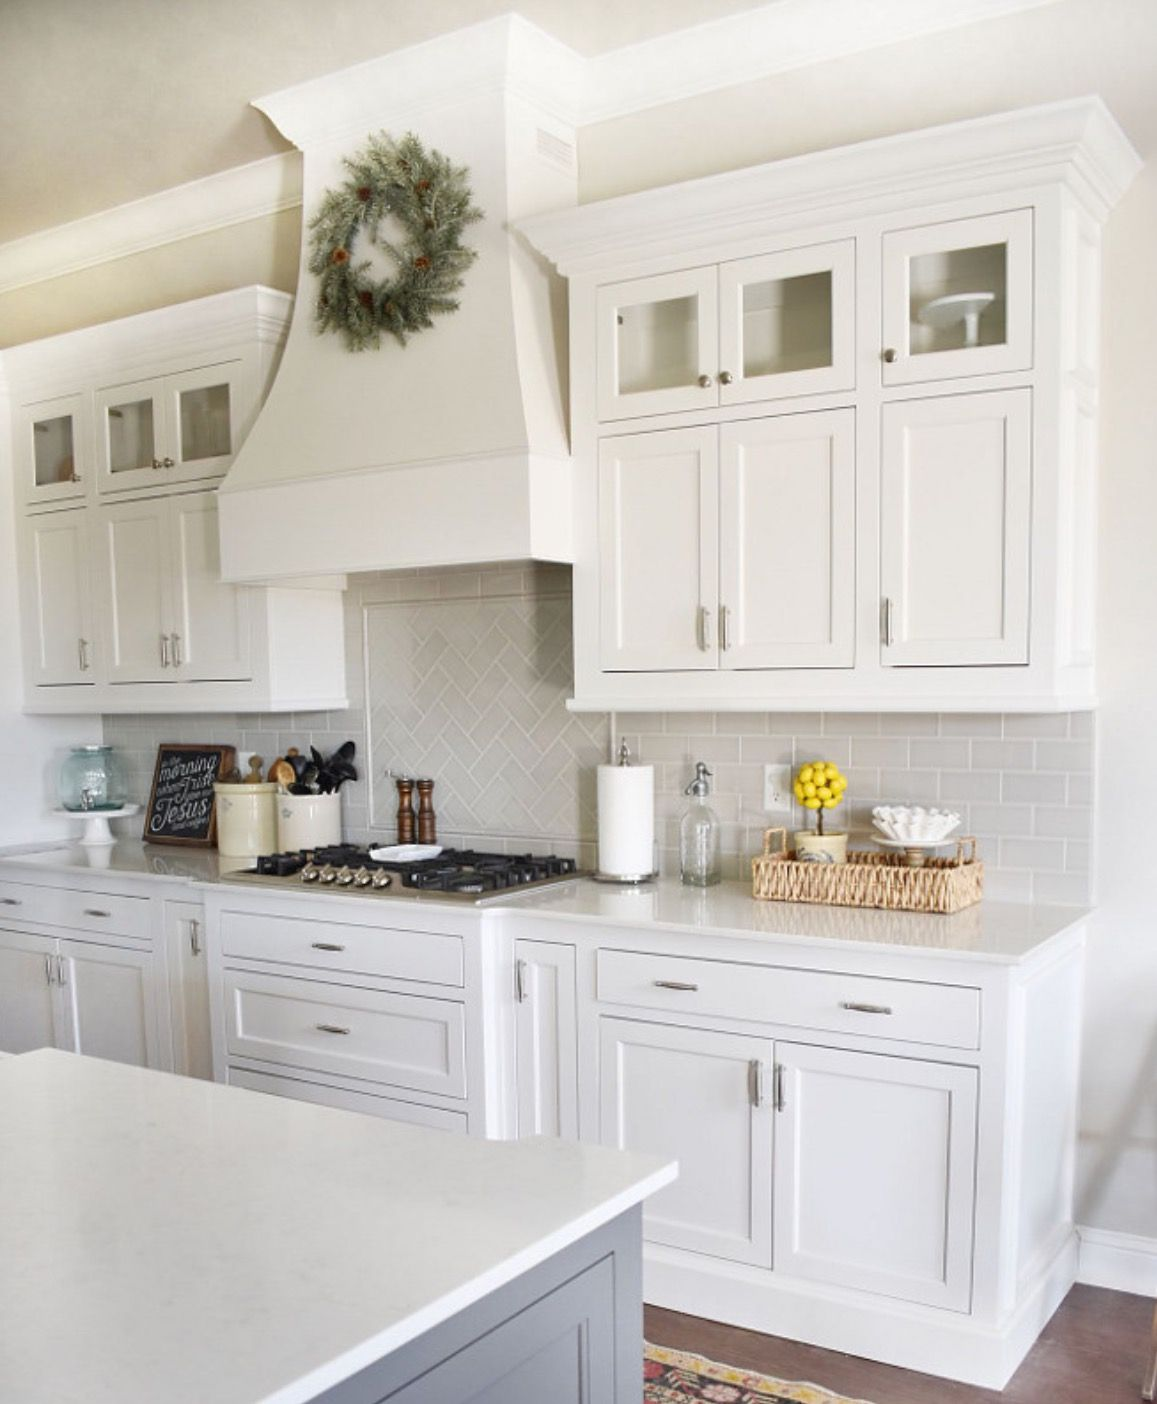 Best White Kitchen With Glass Inserts In Upper Cabinets 400 x 300